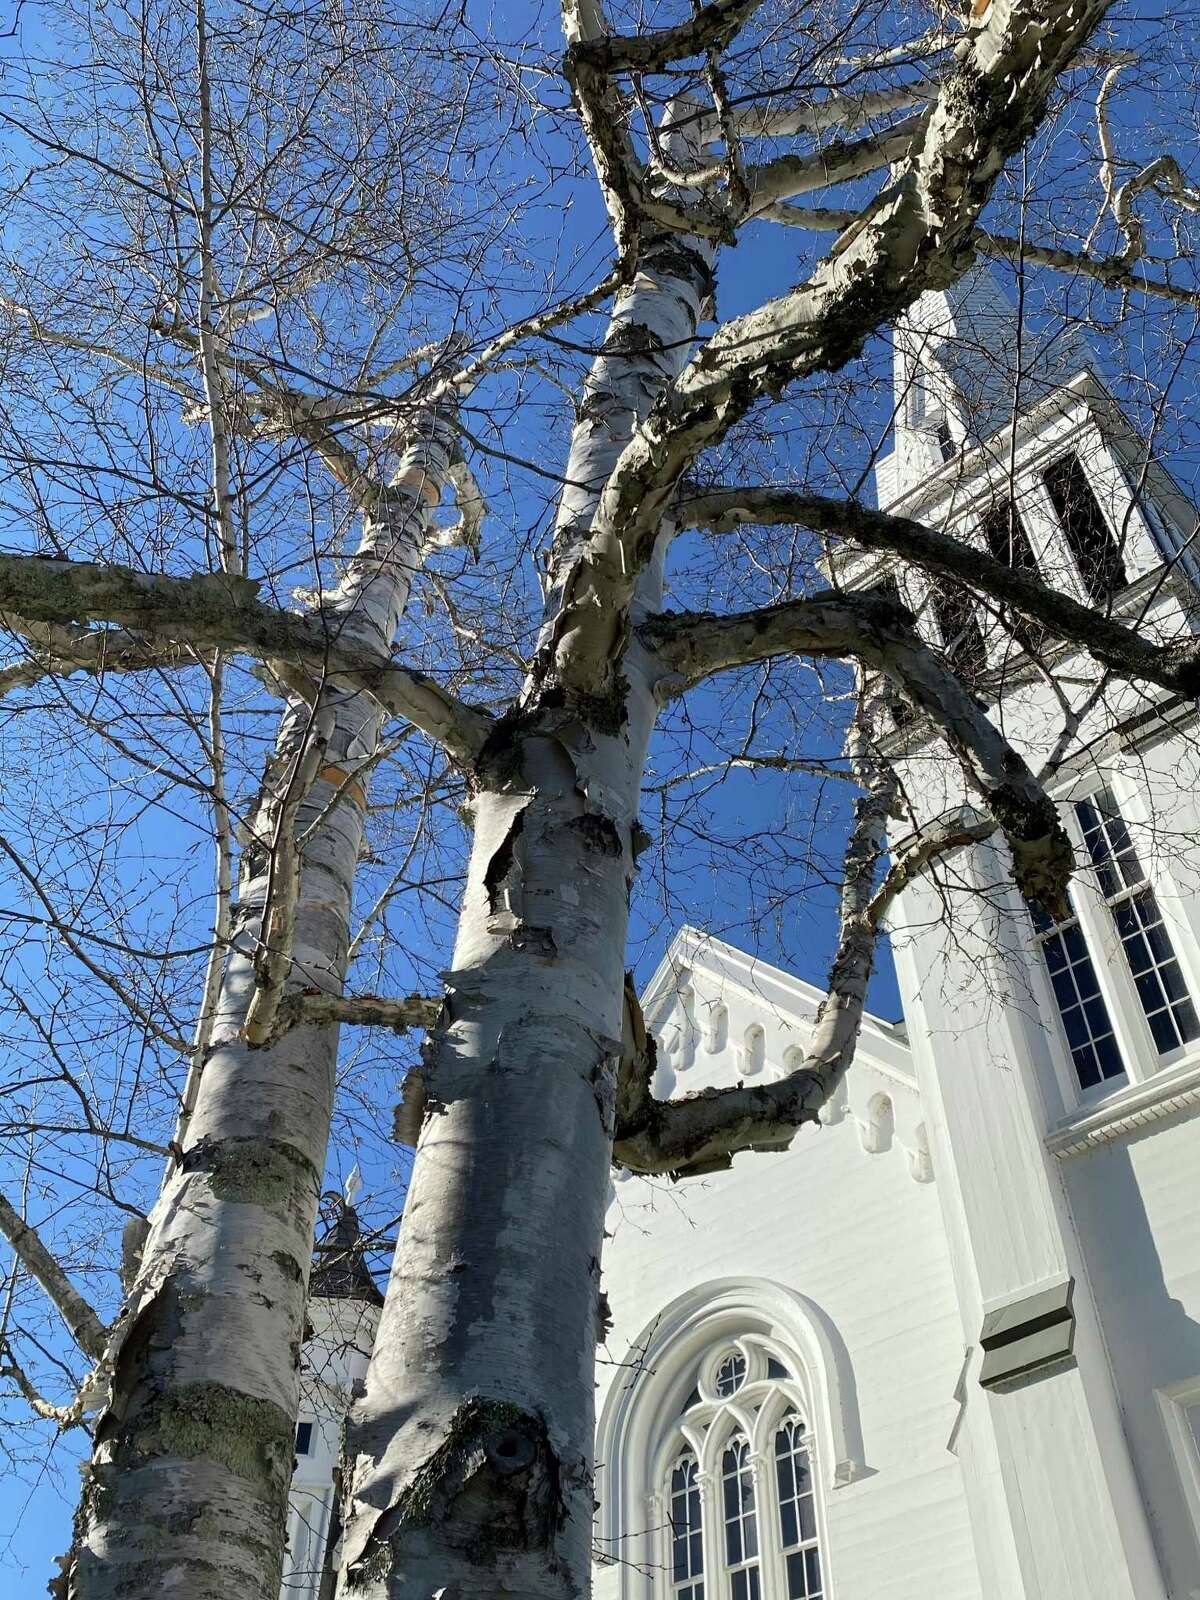 The might of this lone tree creates a striking statement in front of the First Congregational Church of Kent.